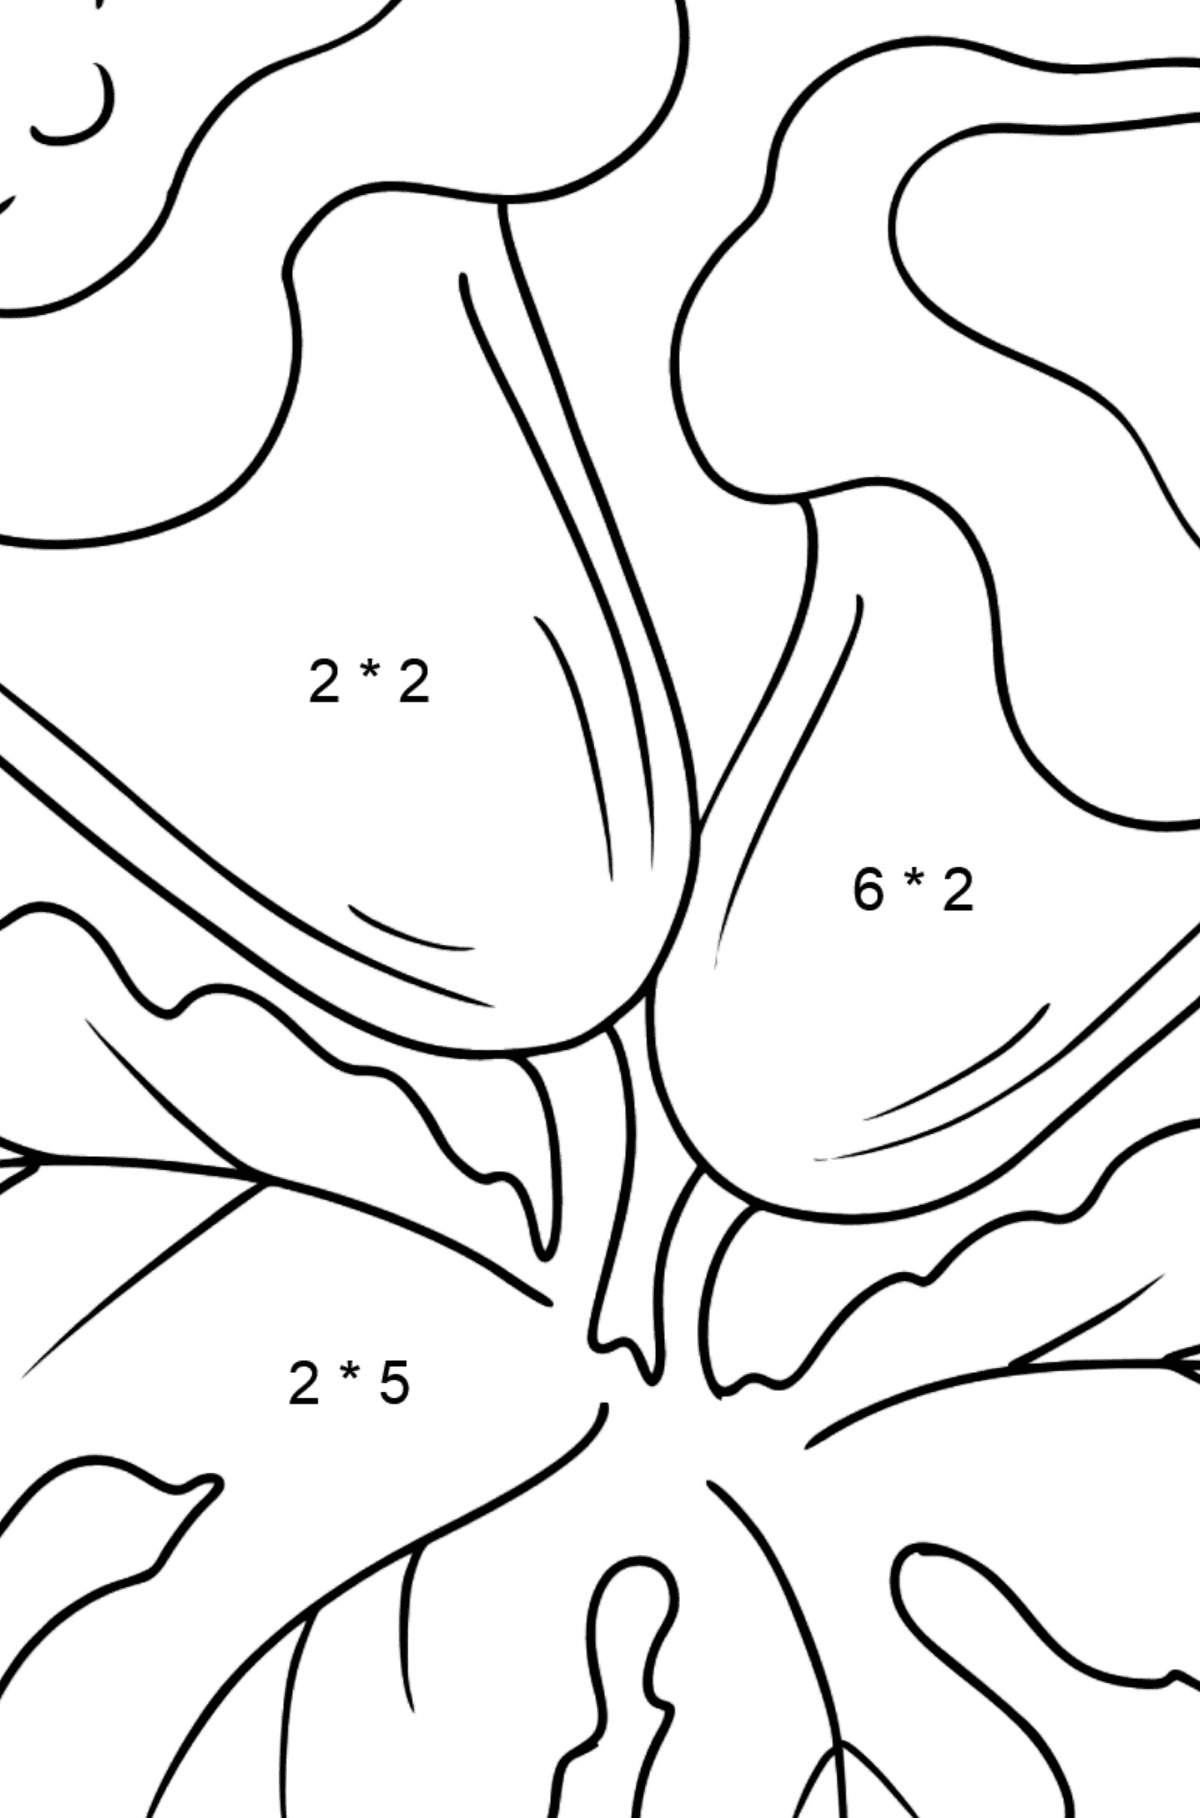 Coloring Page - Indoor flowers - Math Coloring - Multiplication for Kids